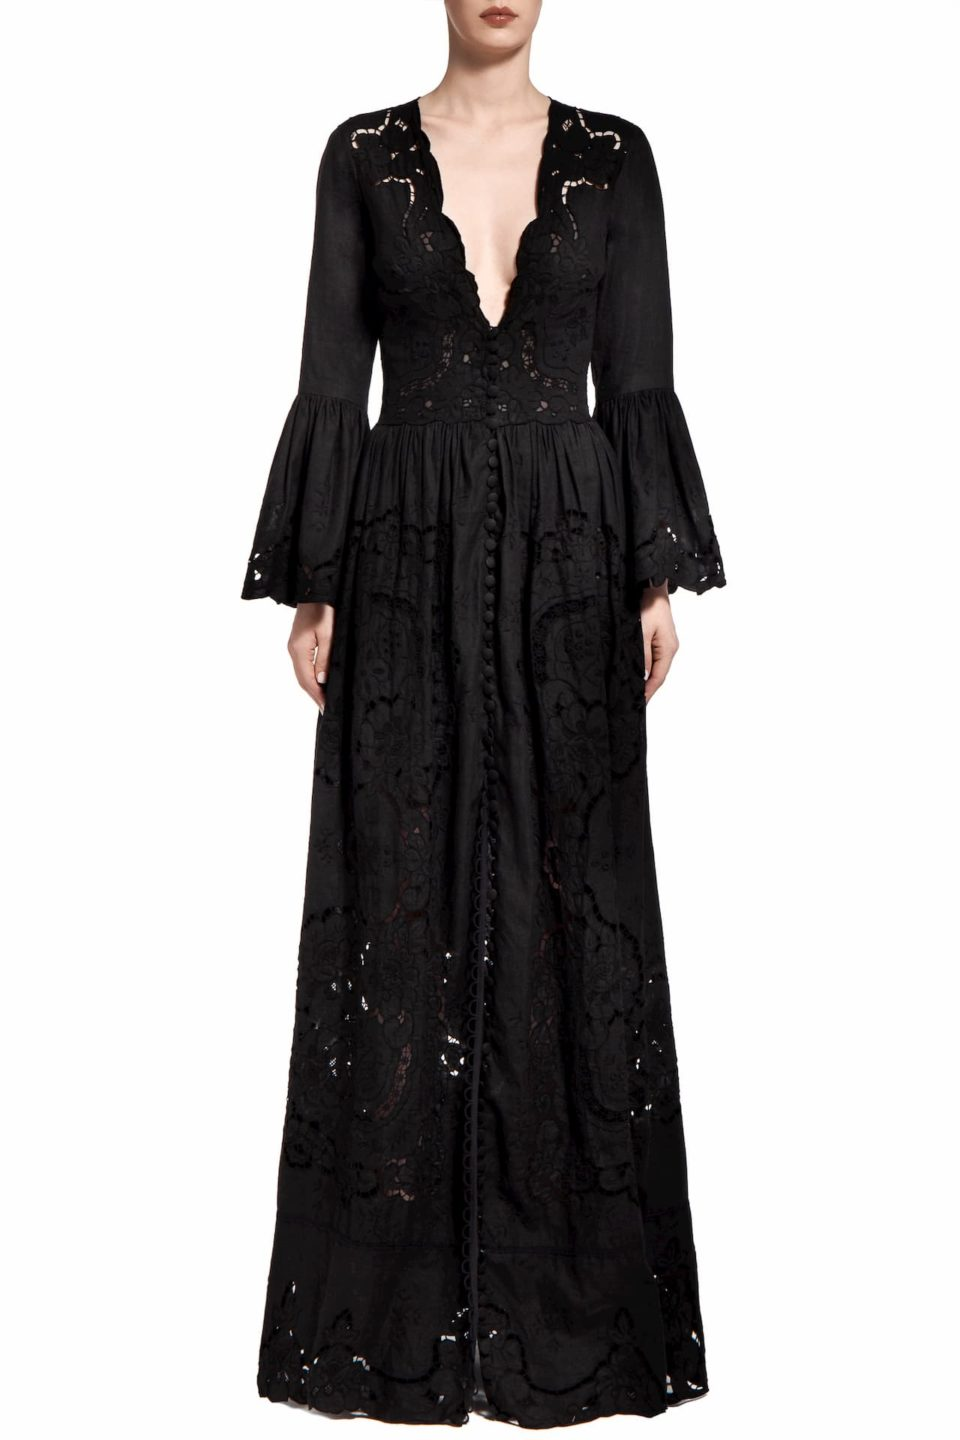 Rusie PR2018 Black Cotton Plunging- Neck Gown with Greek Embroidered Hand-Cut Lace Detail